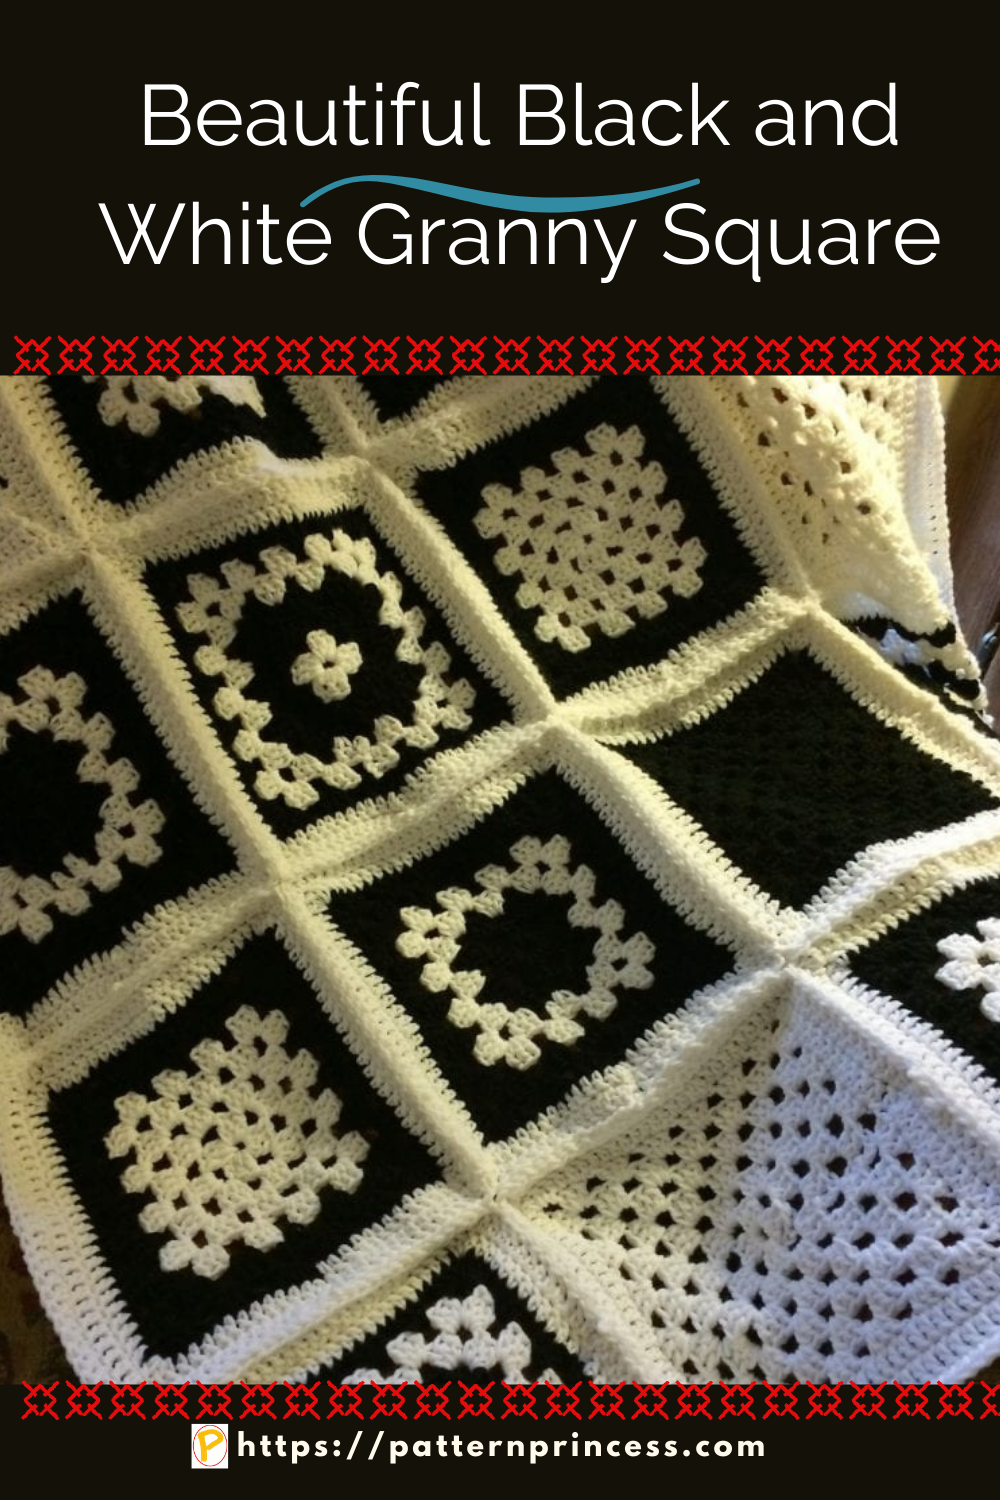 Beautiful Black and White Granny Square